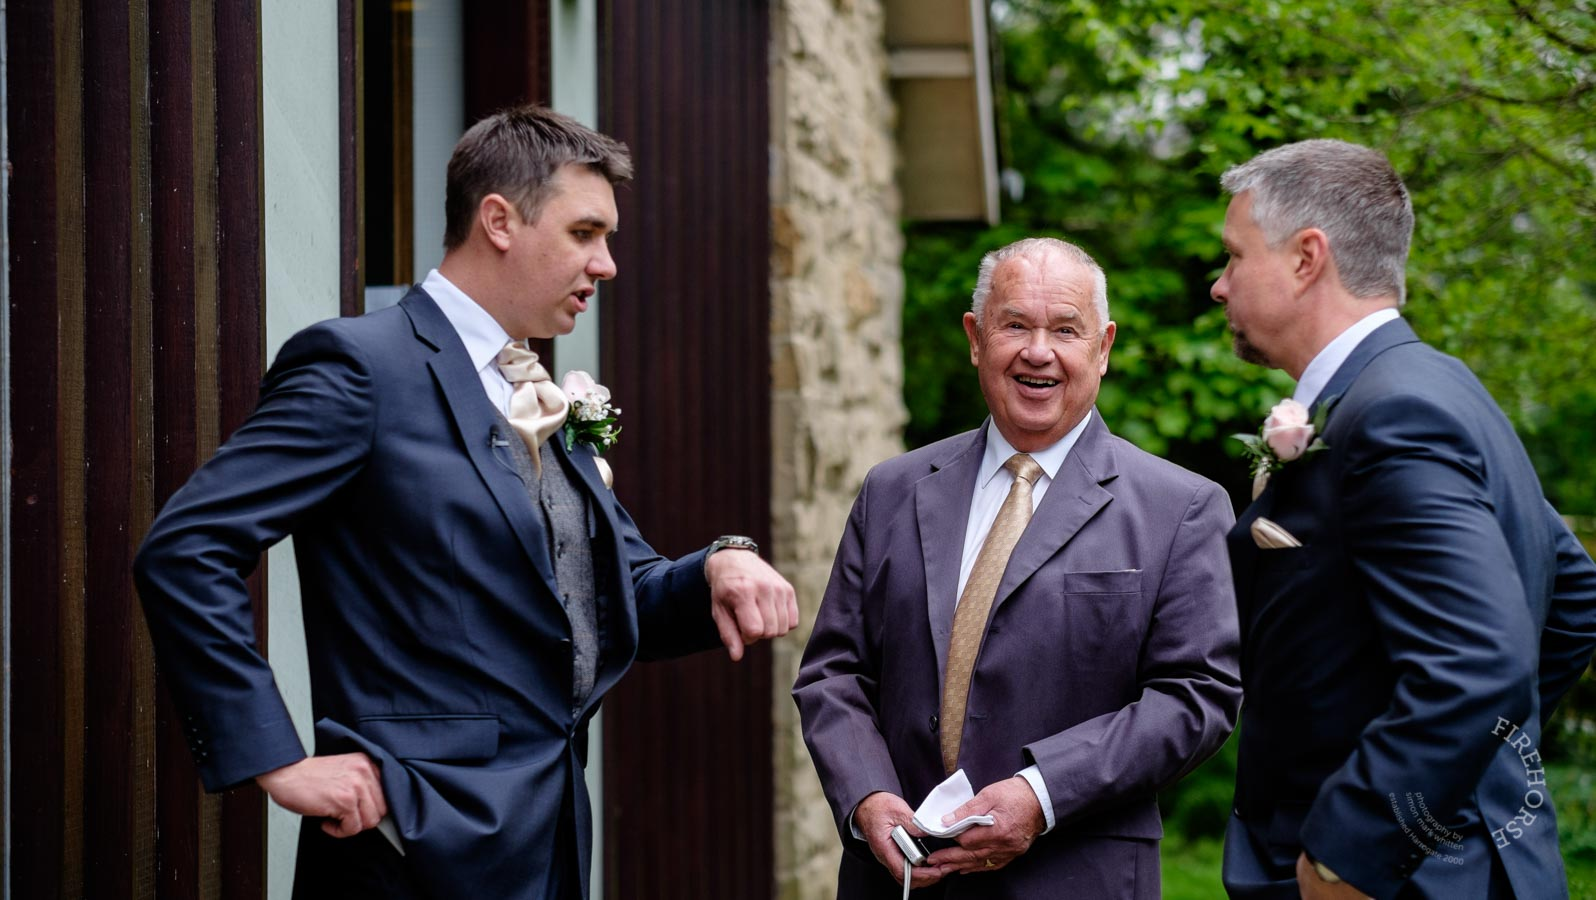 Wedding-At-Middleton-Lodge-028